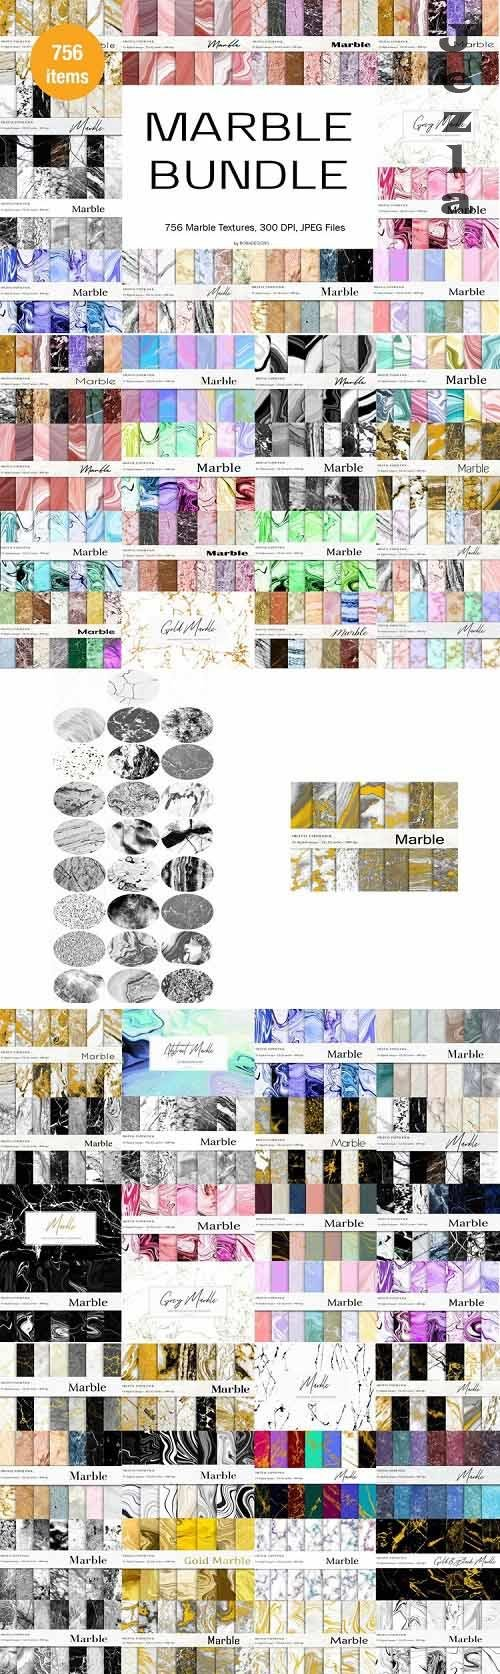 Marble Textures Bundle, Marble Backgrounds - 1133473